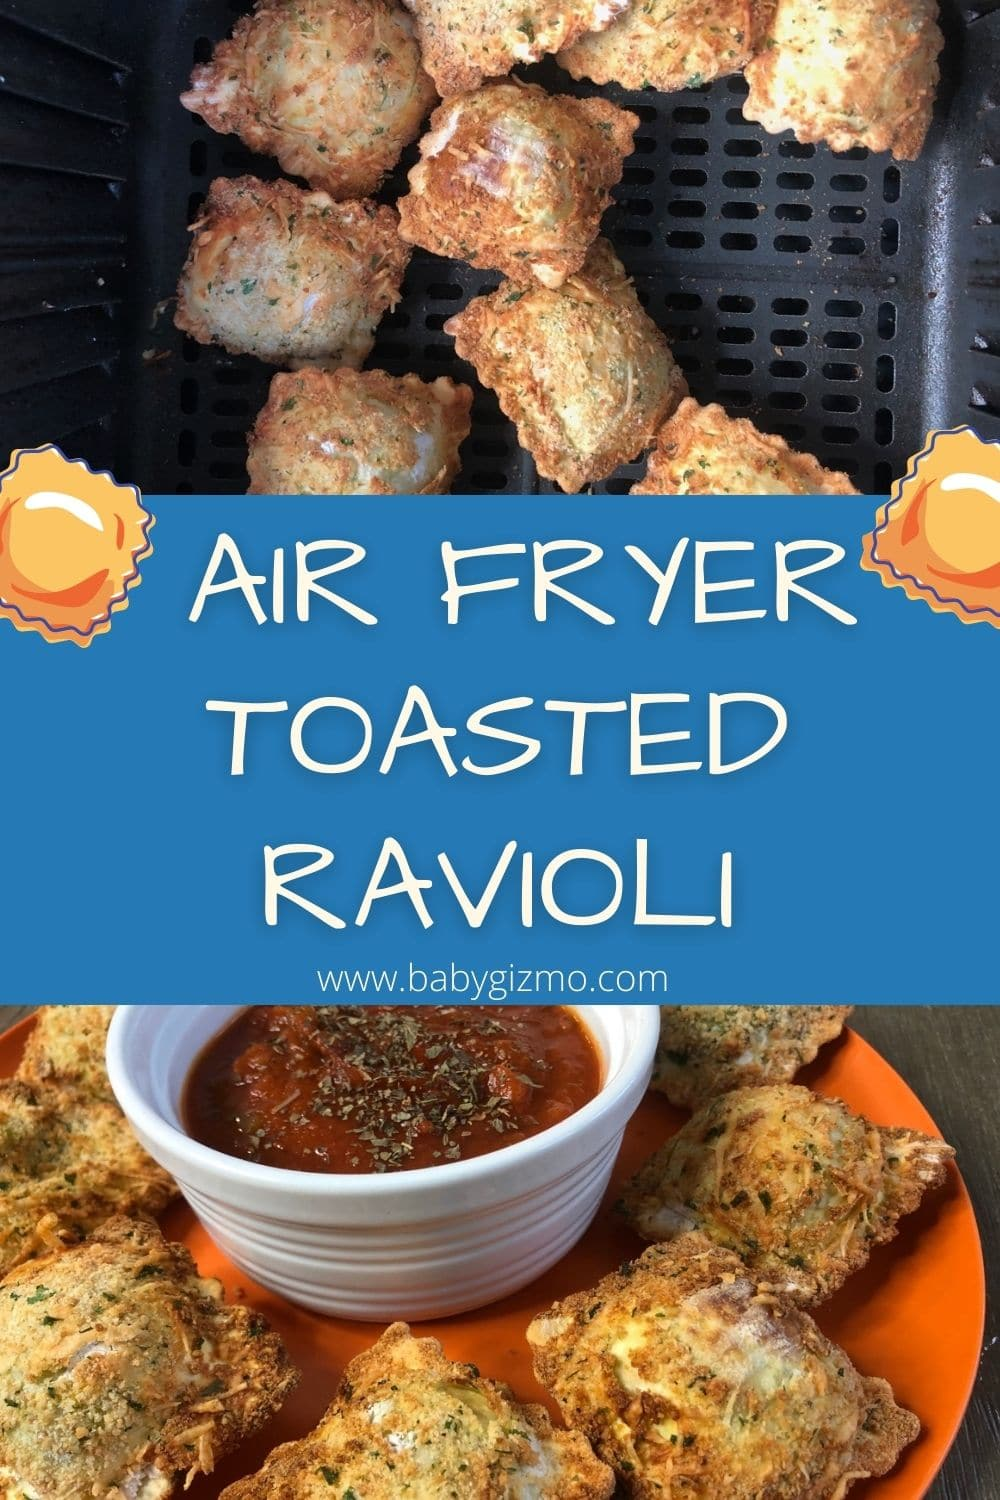 AIR FRYER TOASTED RAVIOLI ON PLATE AND IN AIR FRYER